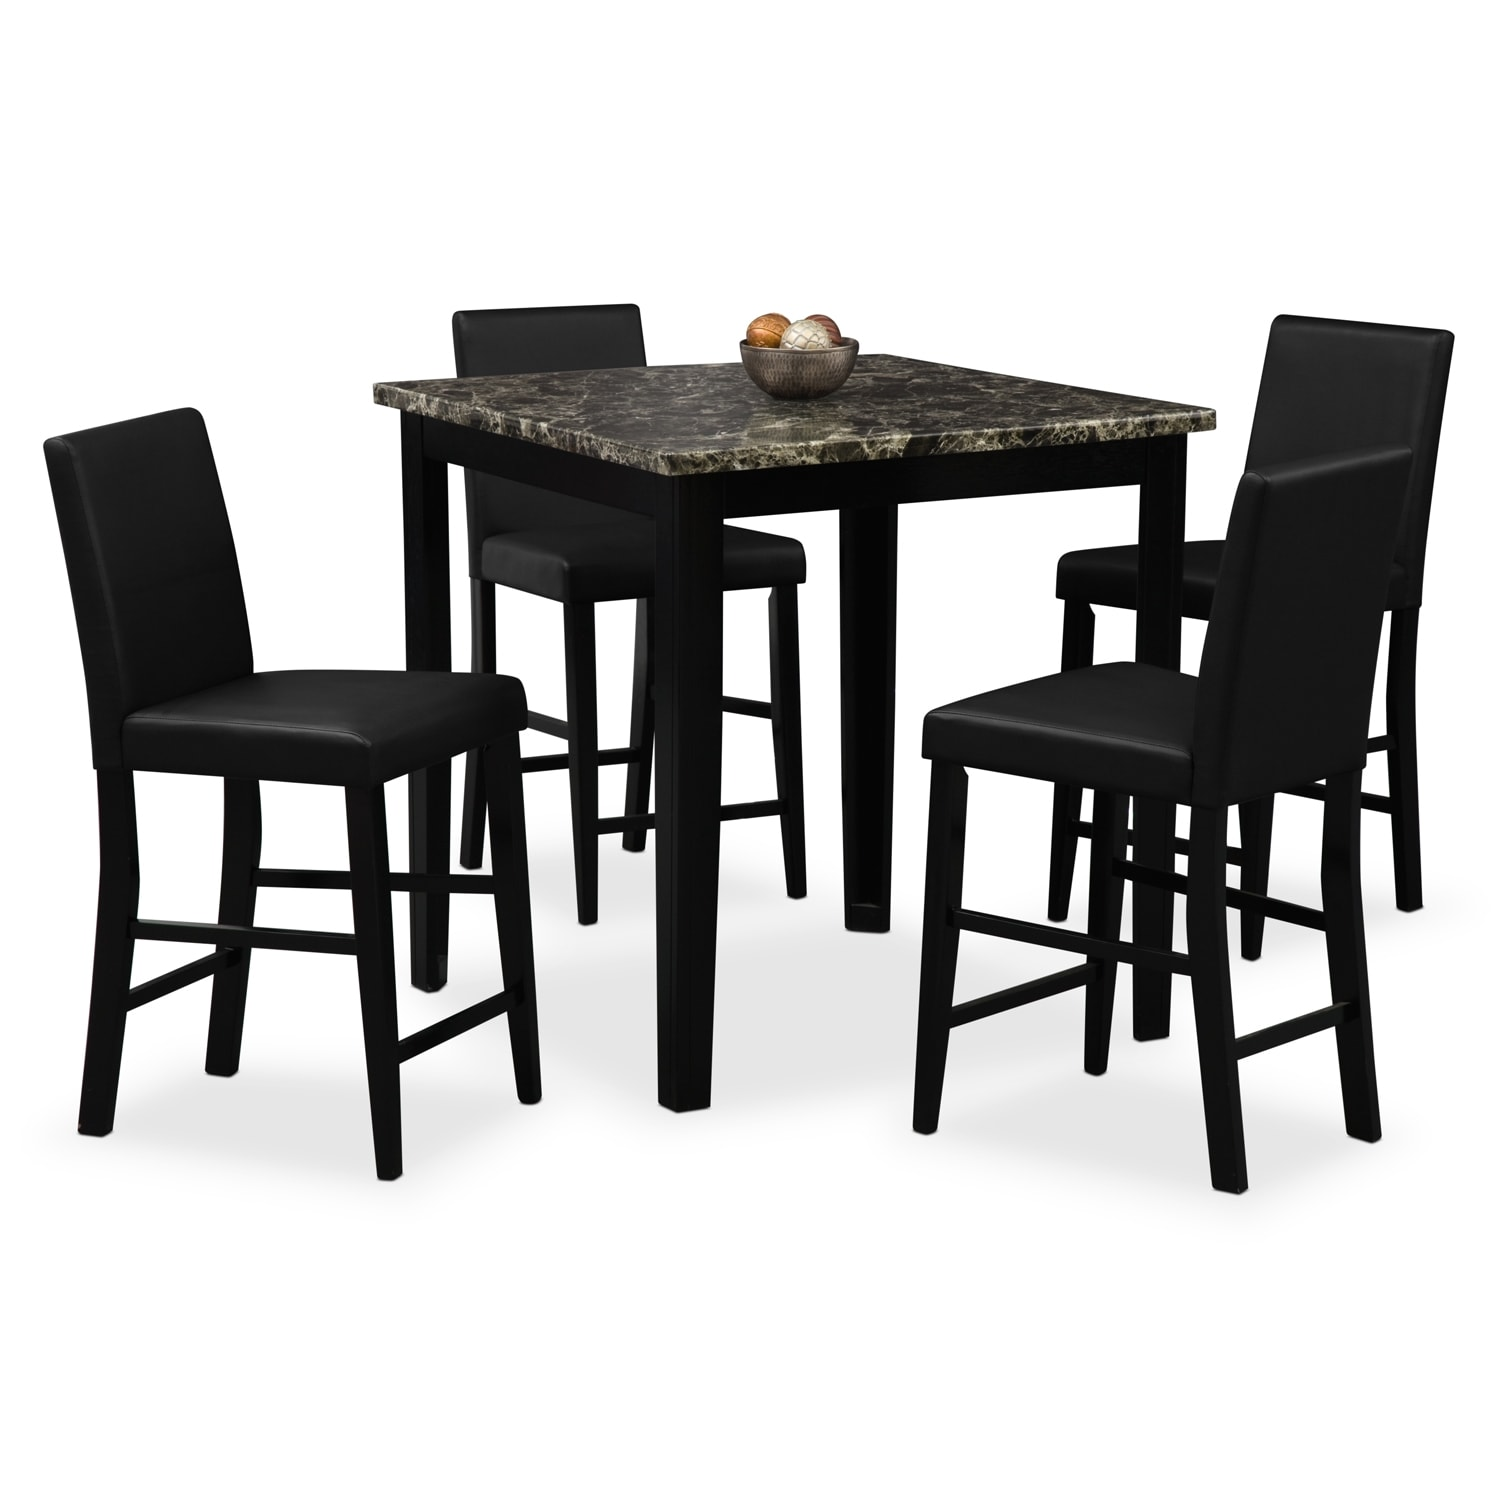 City Furniture Dining Room Shadow Counter Height Table And 4 Chairs Black Value City